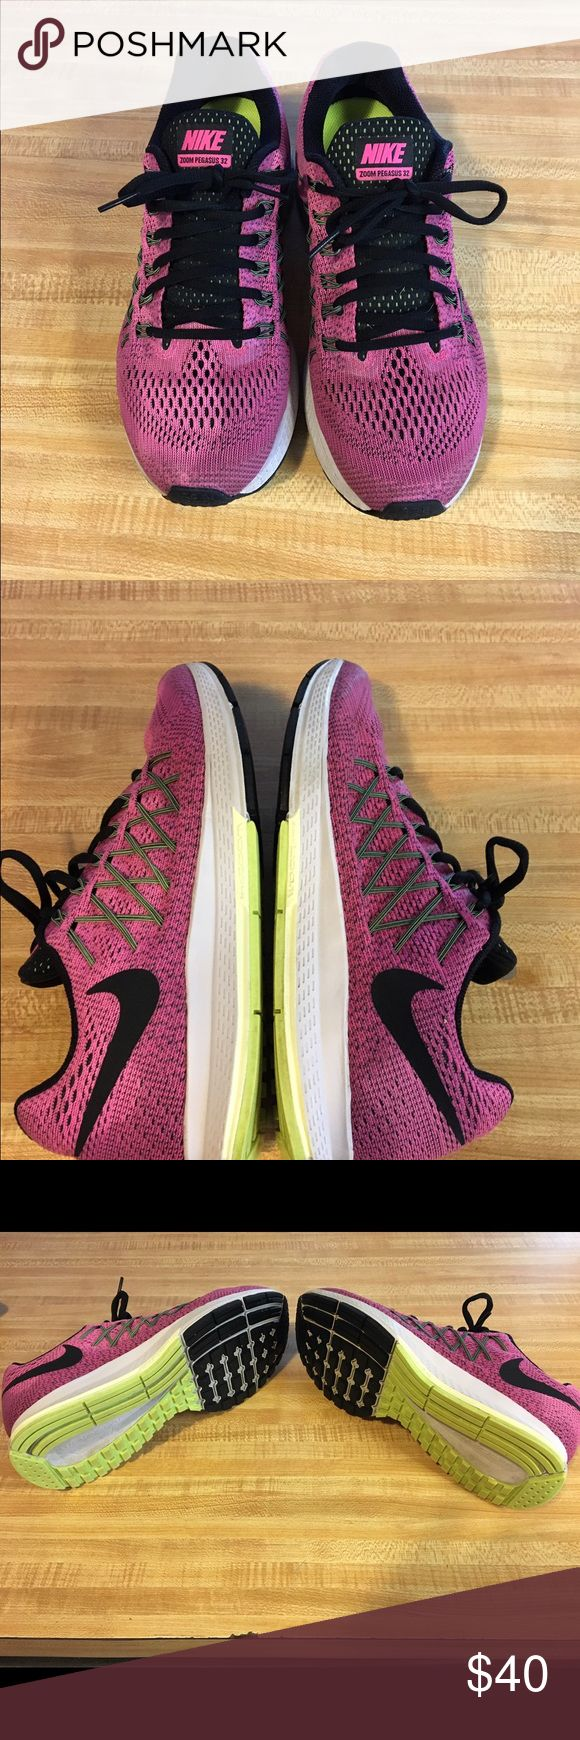 Nike Pegasus 32 Pink/Black Nike Pegasus 32. Wore 3-4 times. Son bought Sz 8.5 & I prefer Sz 9 to run in. Excellent Condition but part of the letter g rubbed off on inside of one shoe. Want to buy same shoe Sz 9. Very good shoes!! There's nothing wrong w color of shoe, I washed them off & they're still wet in pic🙂Pic 6 is dry. Open to offers🙂 Nike Shoes Athletic Shoes